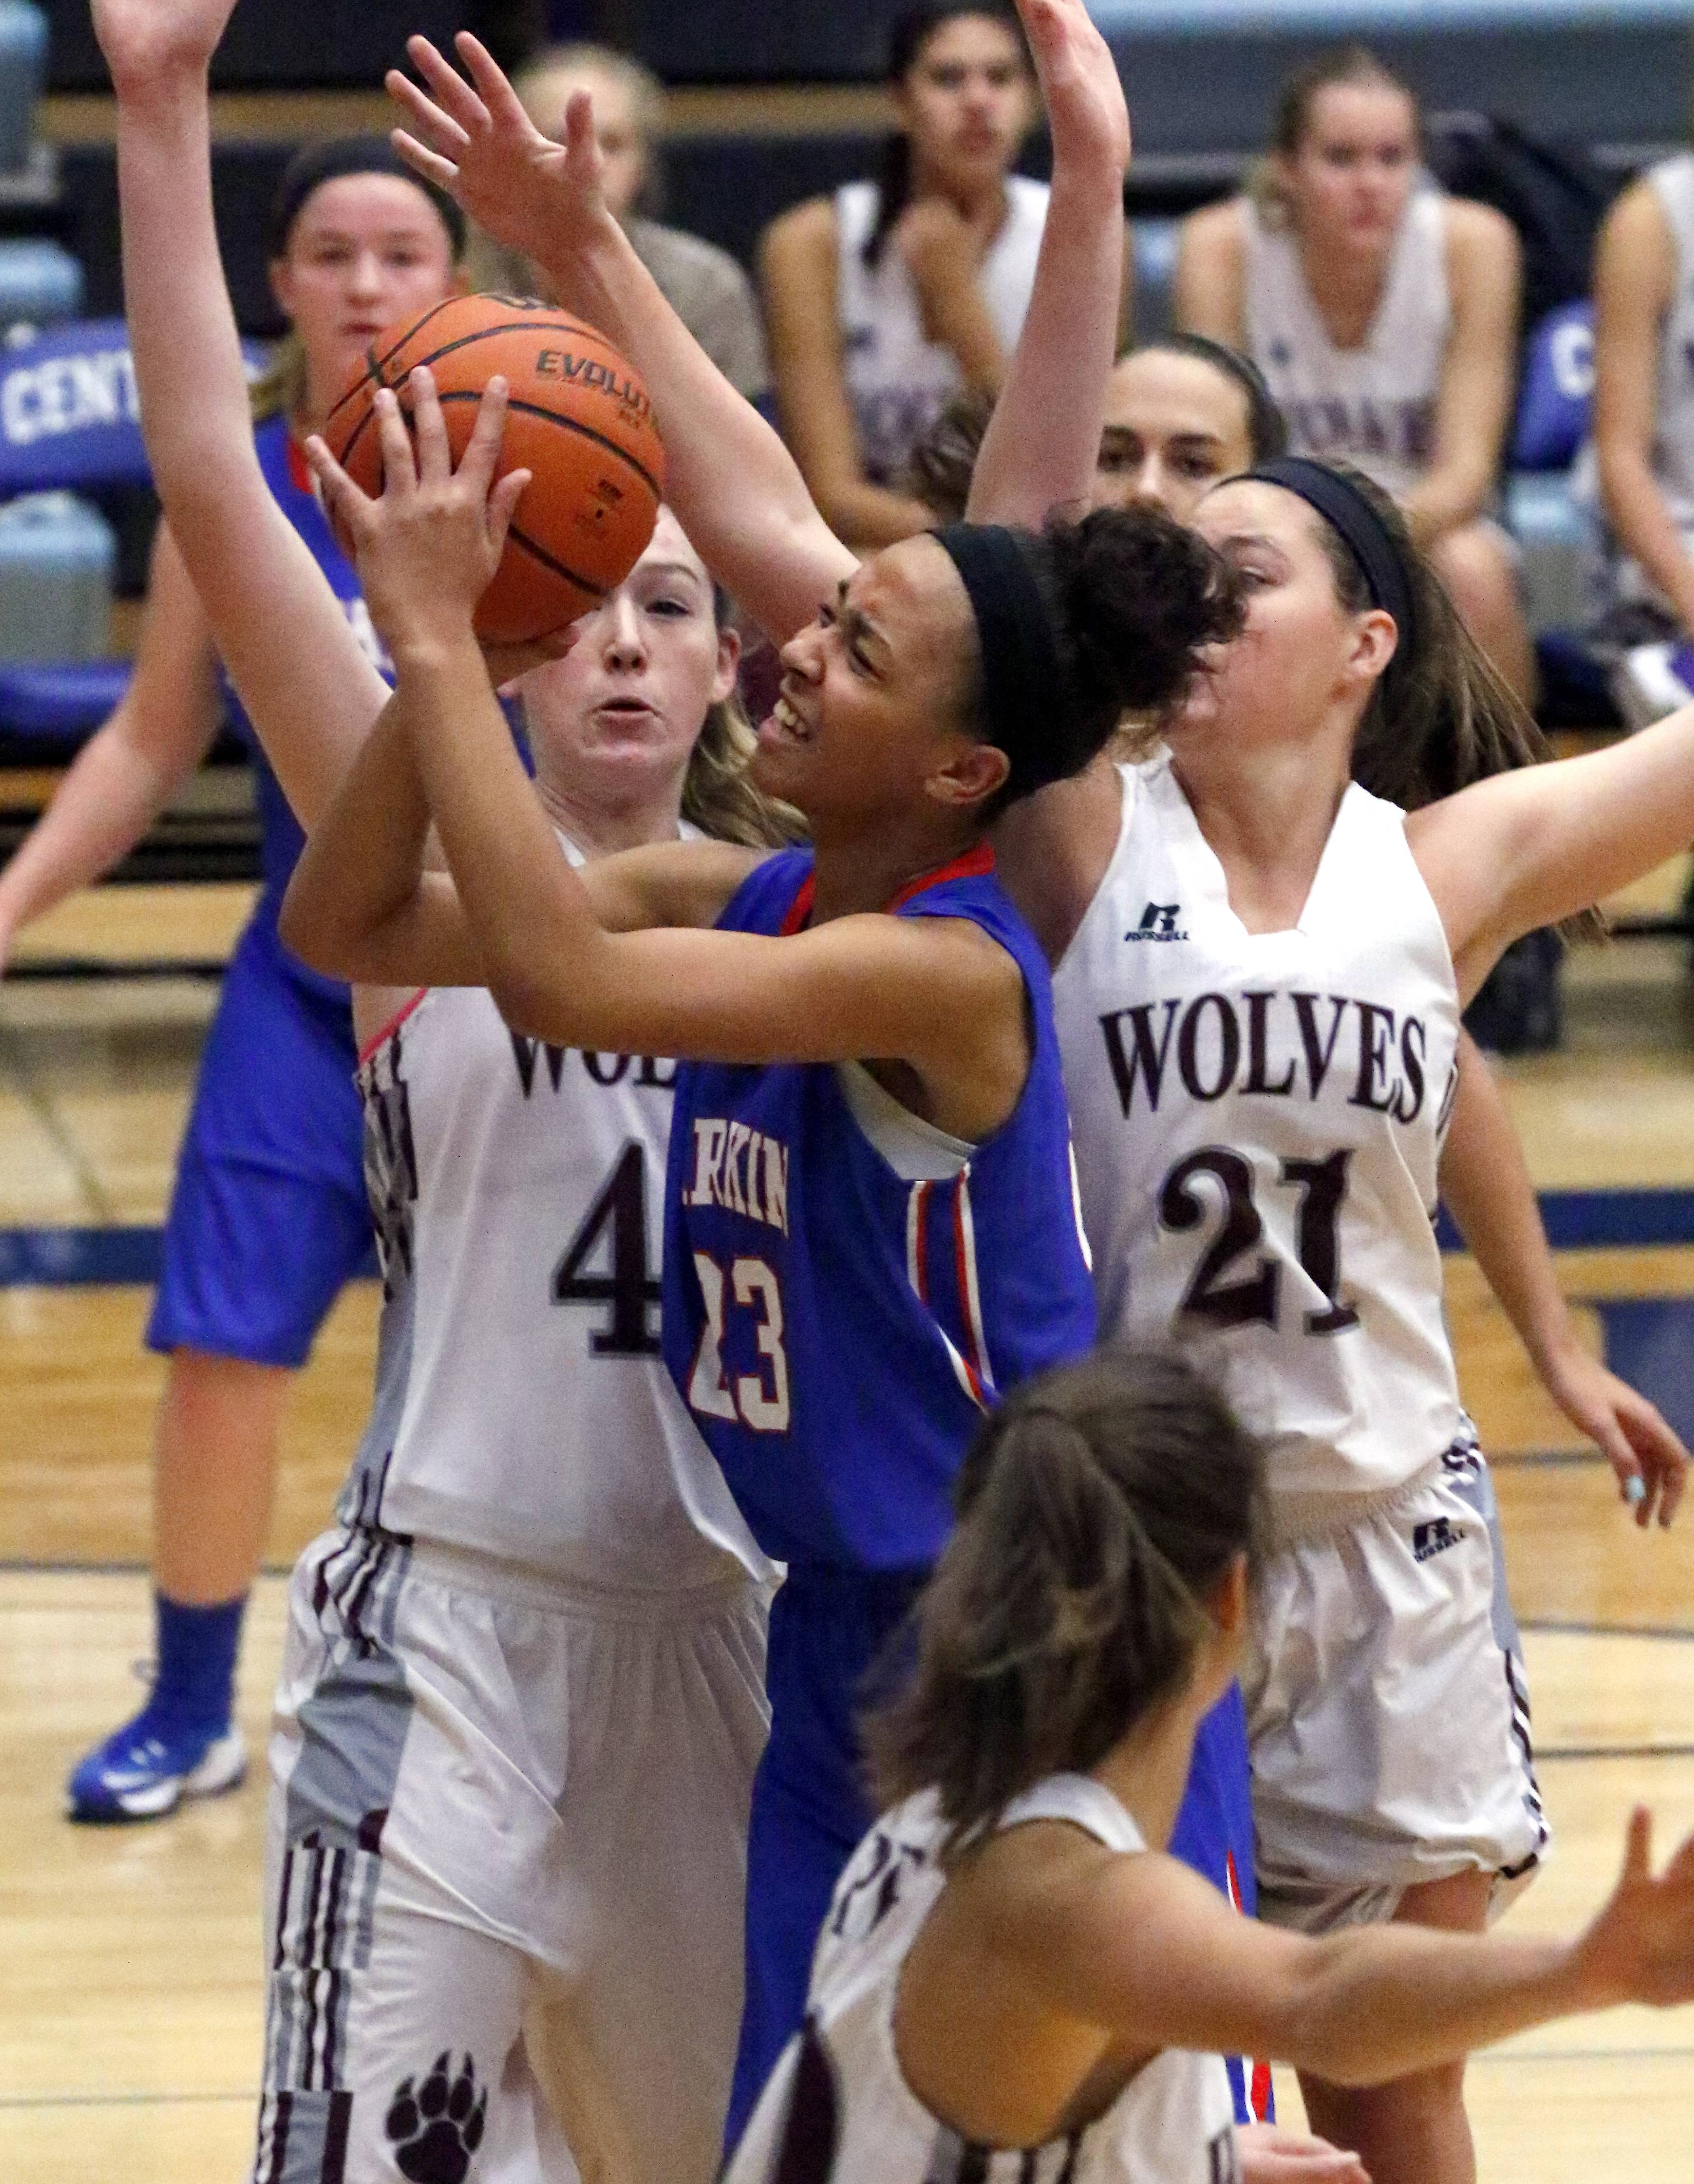 Larkin's Brianna Young is surrounded by a pack of Prairie Ridge Wolves as she drives to the basket during girls basketball Saturday at Burlington Central's Thanksgiving Classic Tournament.